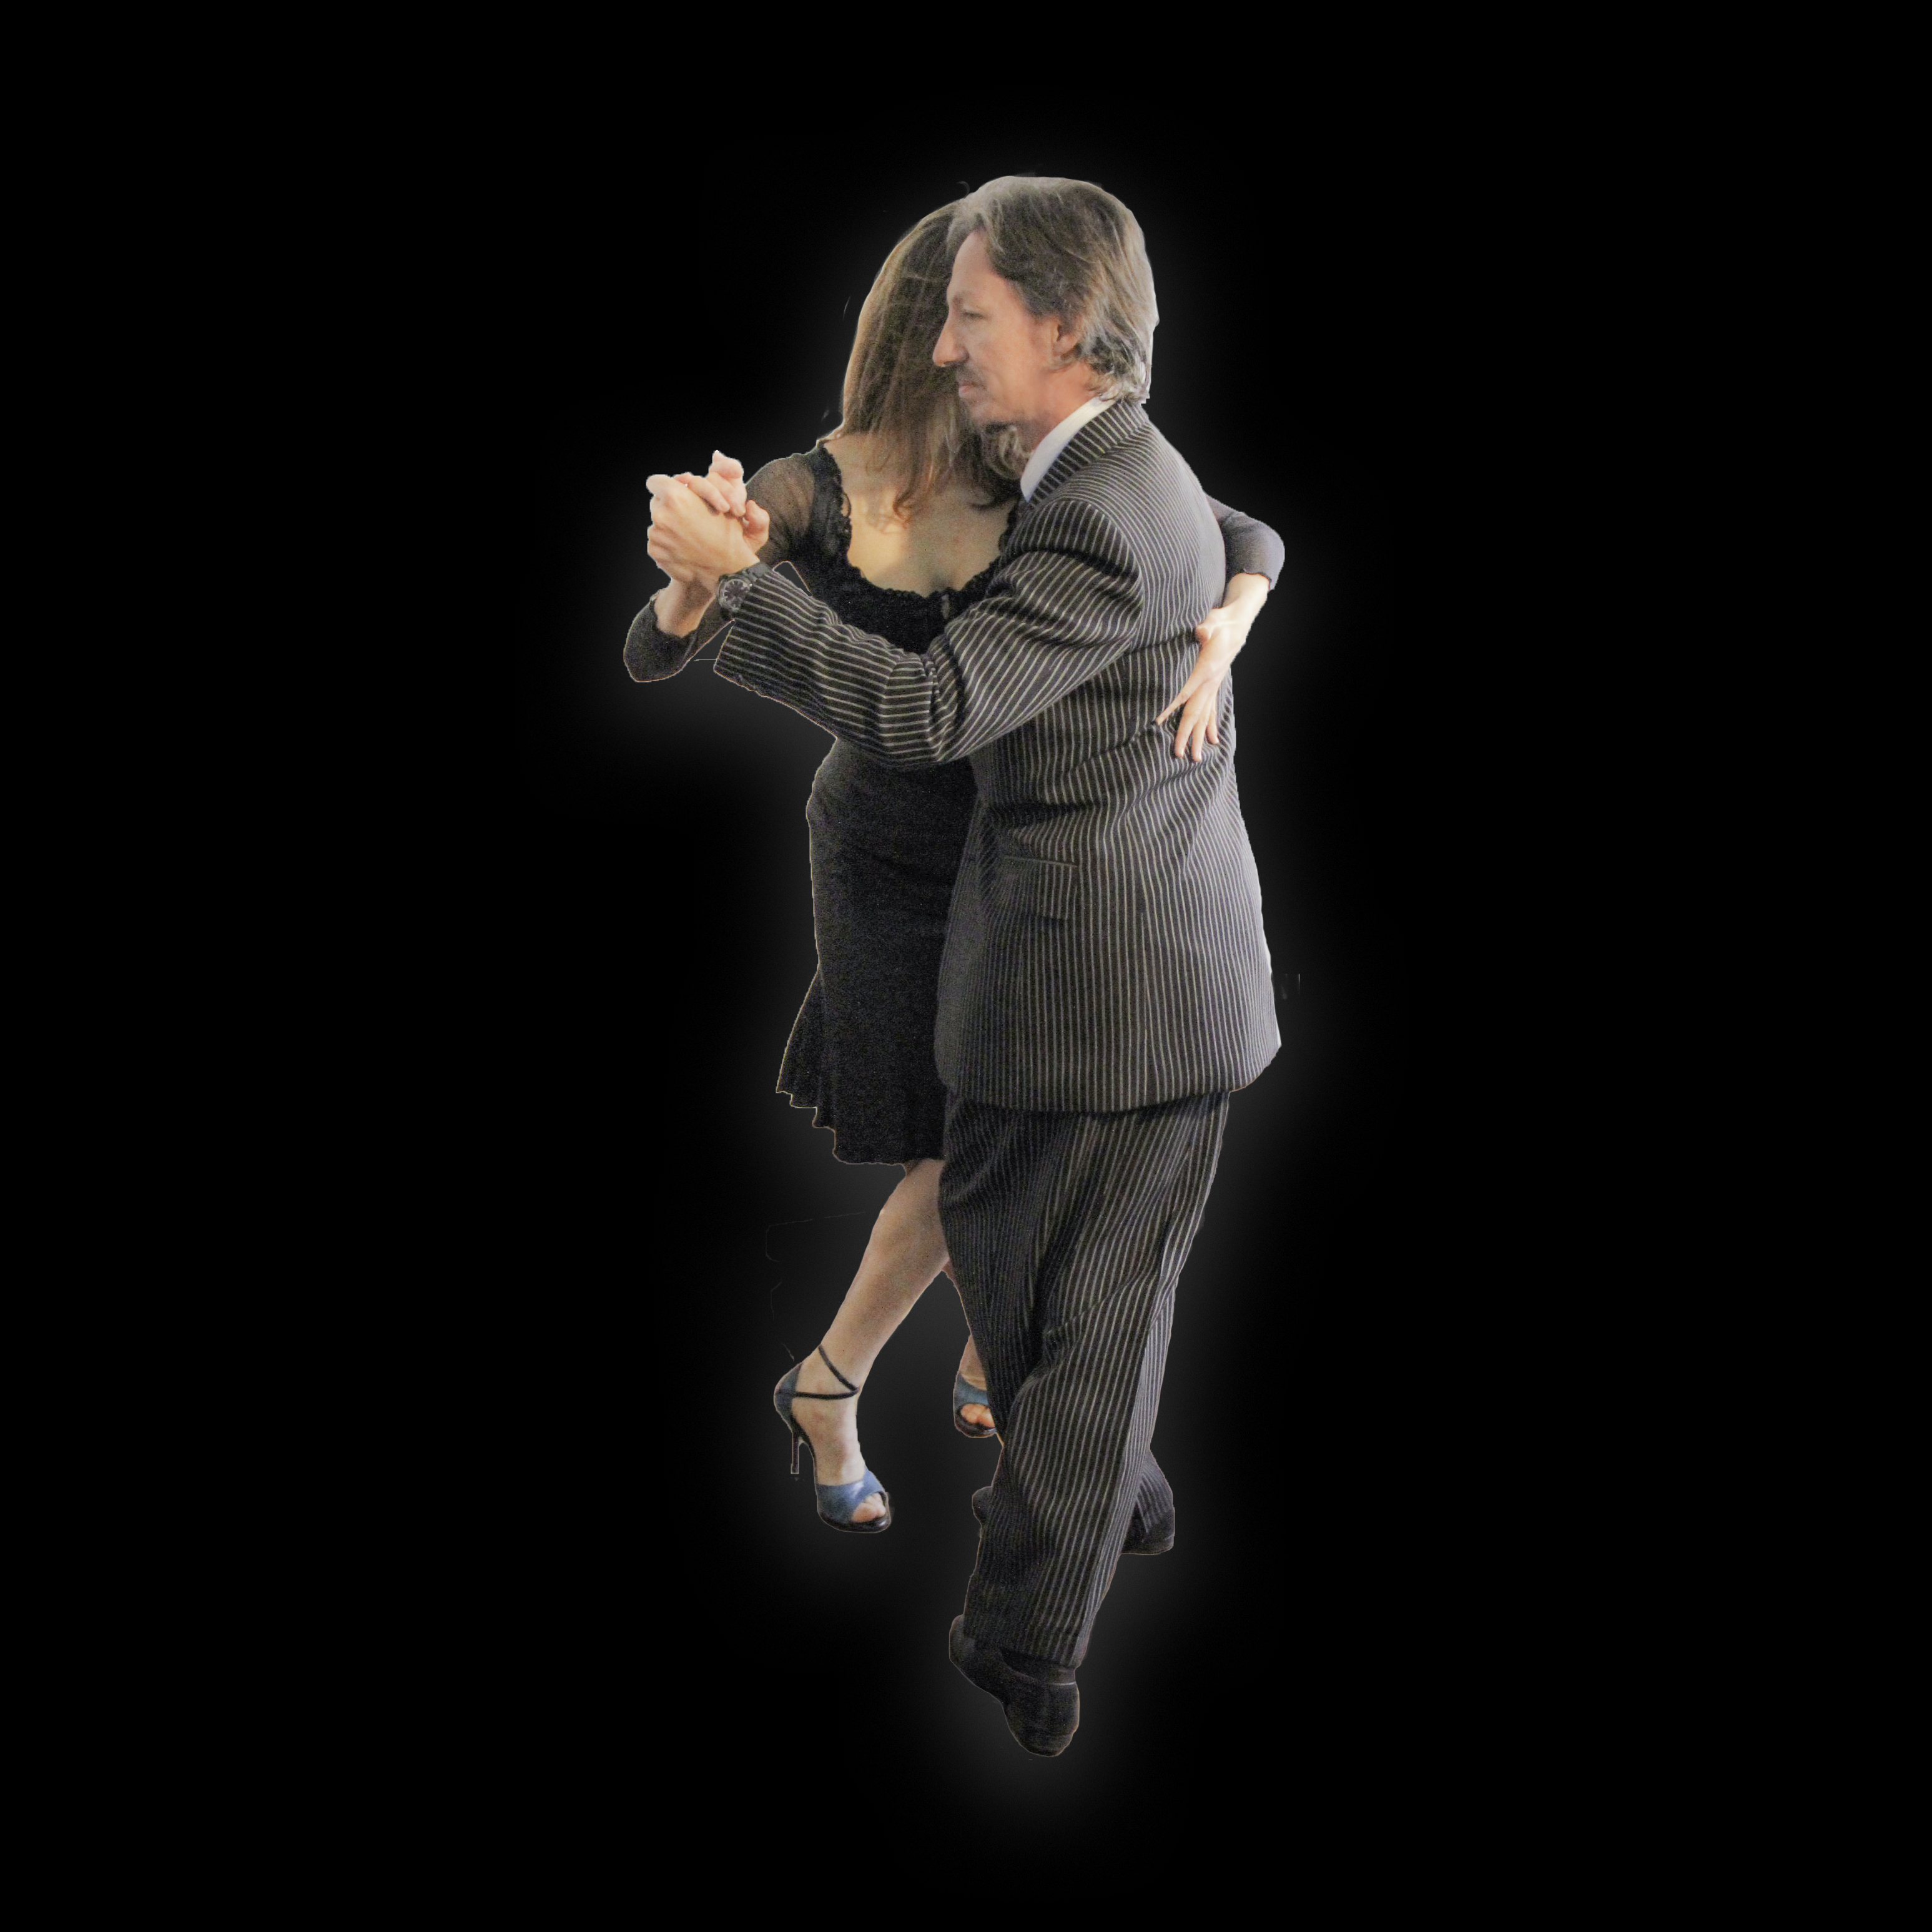 Discover Argentine Tango and Buenos Aires with Marcelo Solis. Classes, lessons,, tours and milongas in a trip that will change your life.